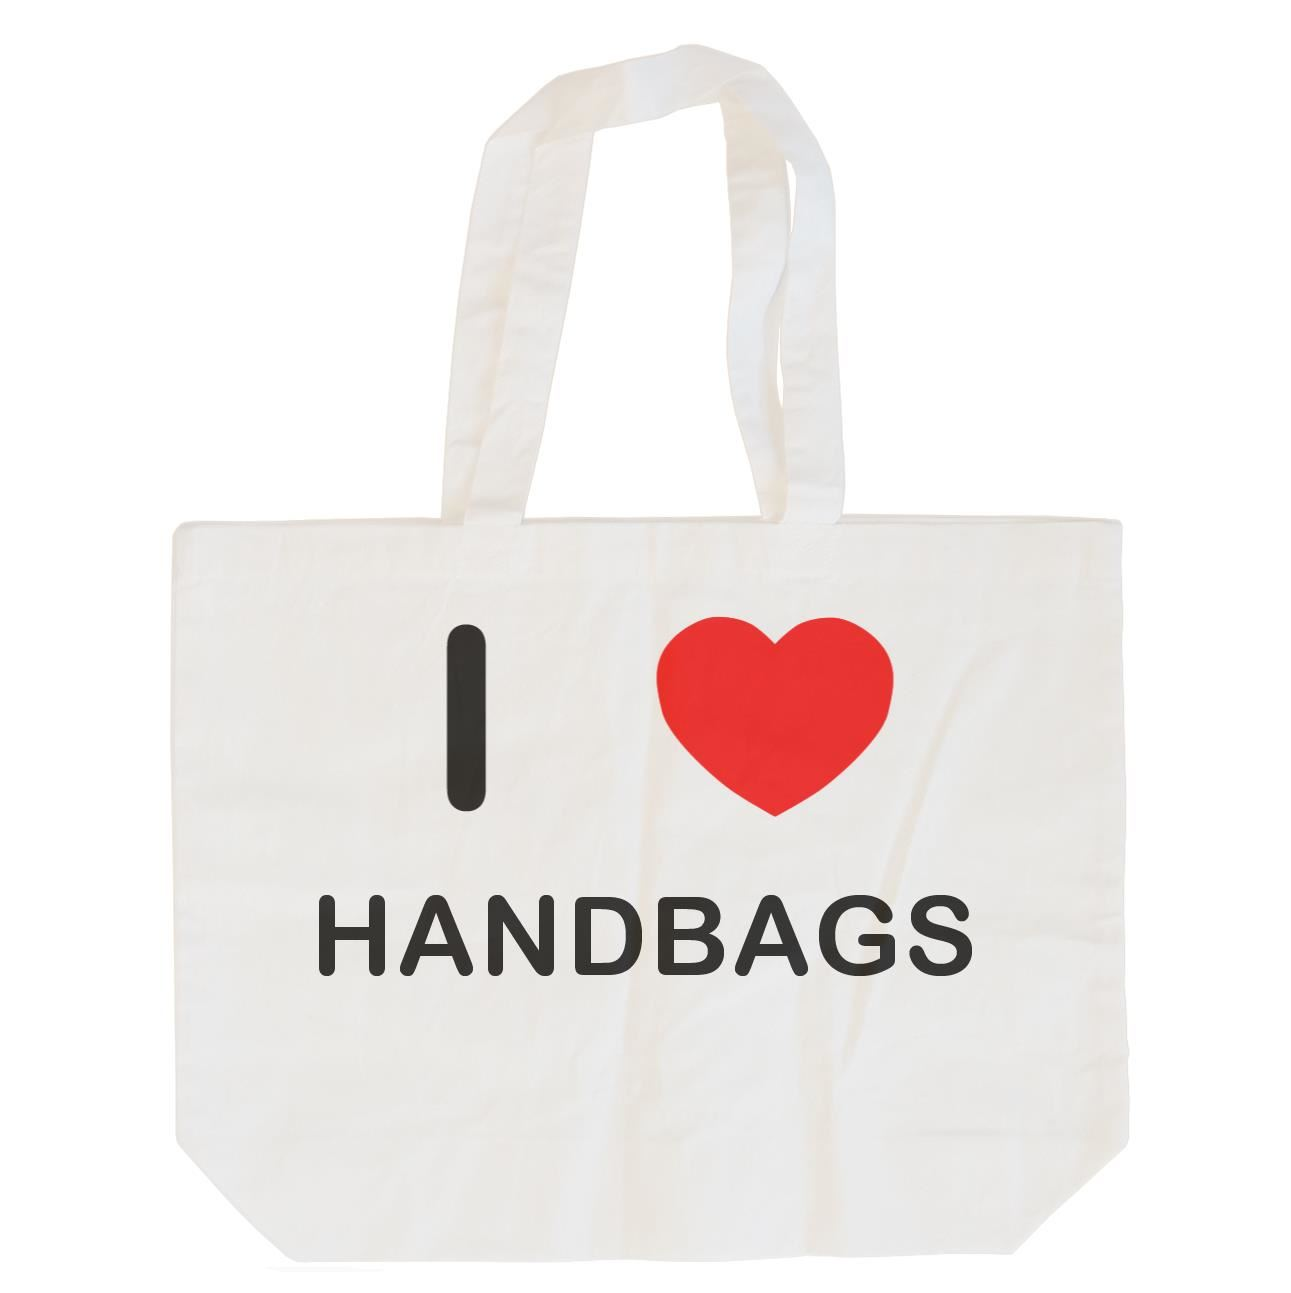 I Love Handbags - Cotton Bag | Size choice Tote, Shopper or Sling